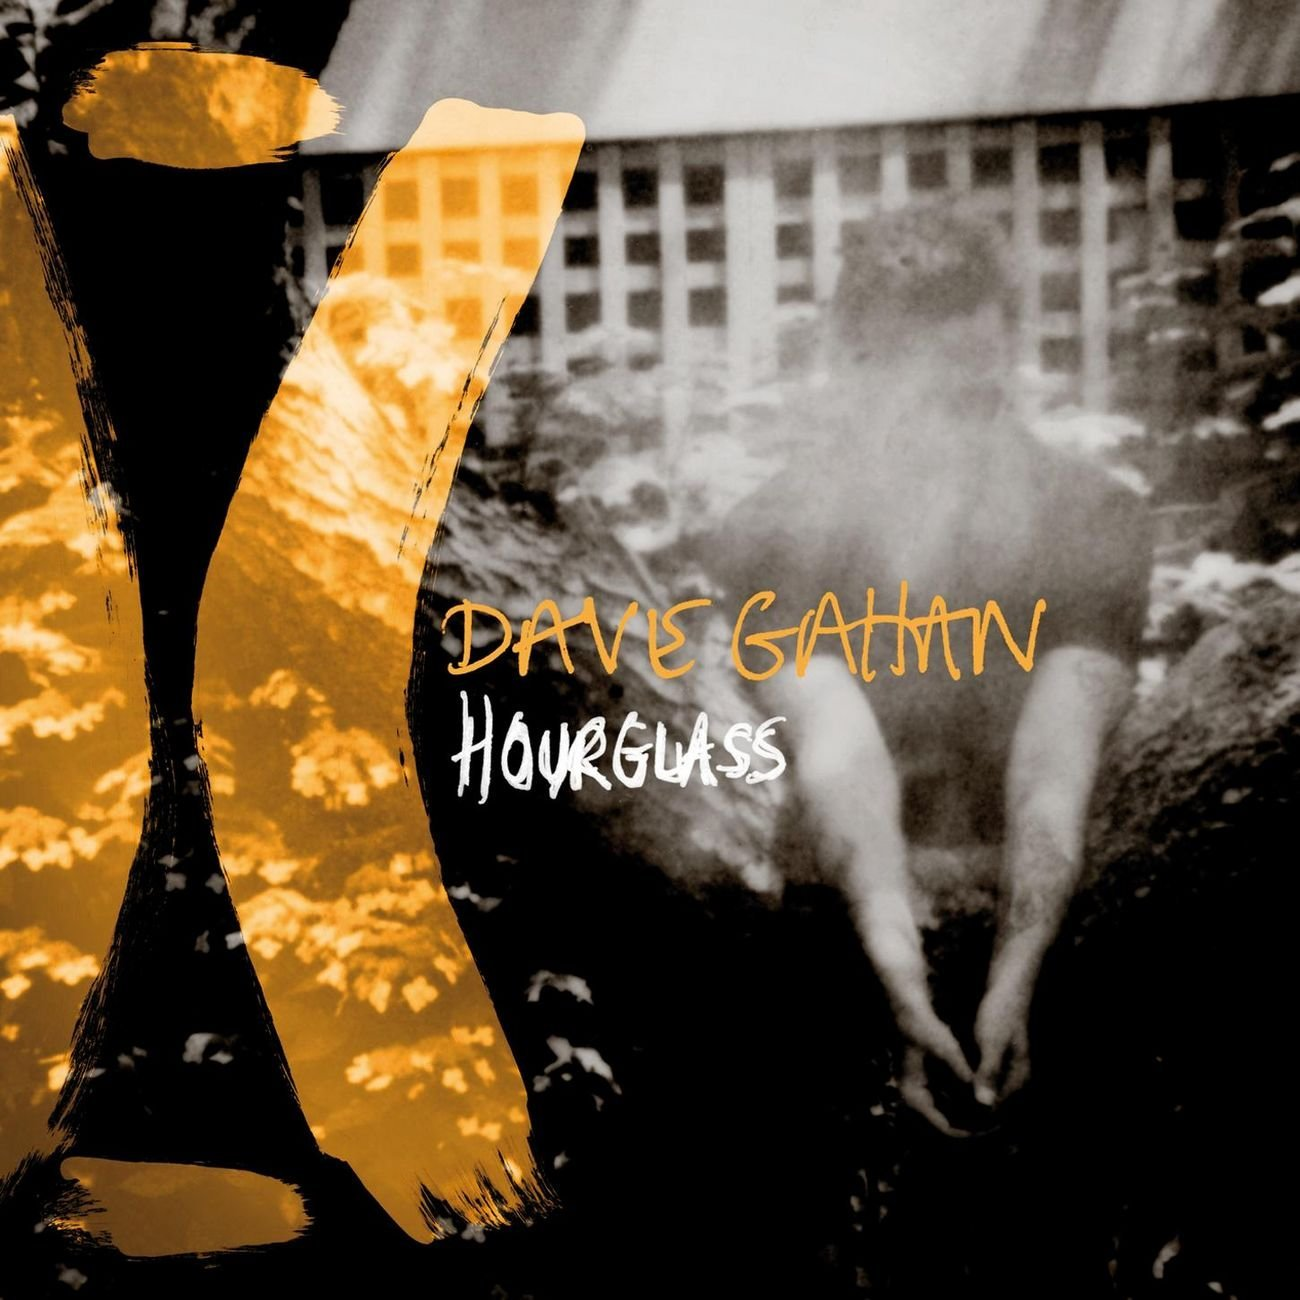 Dave Gahan: Hourglass (2007) Book Cover